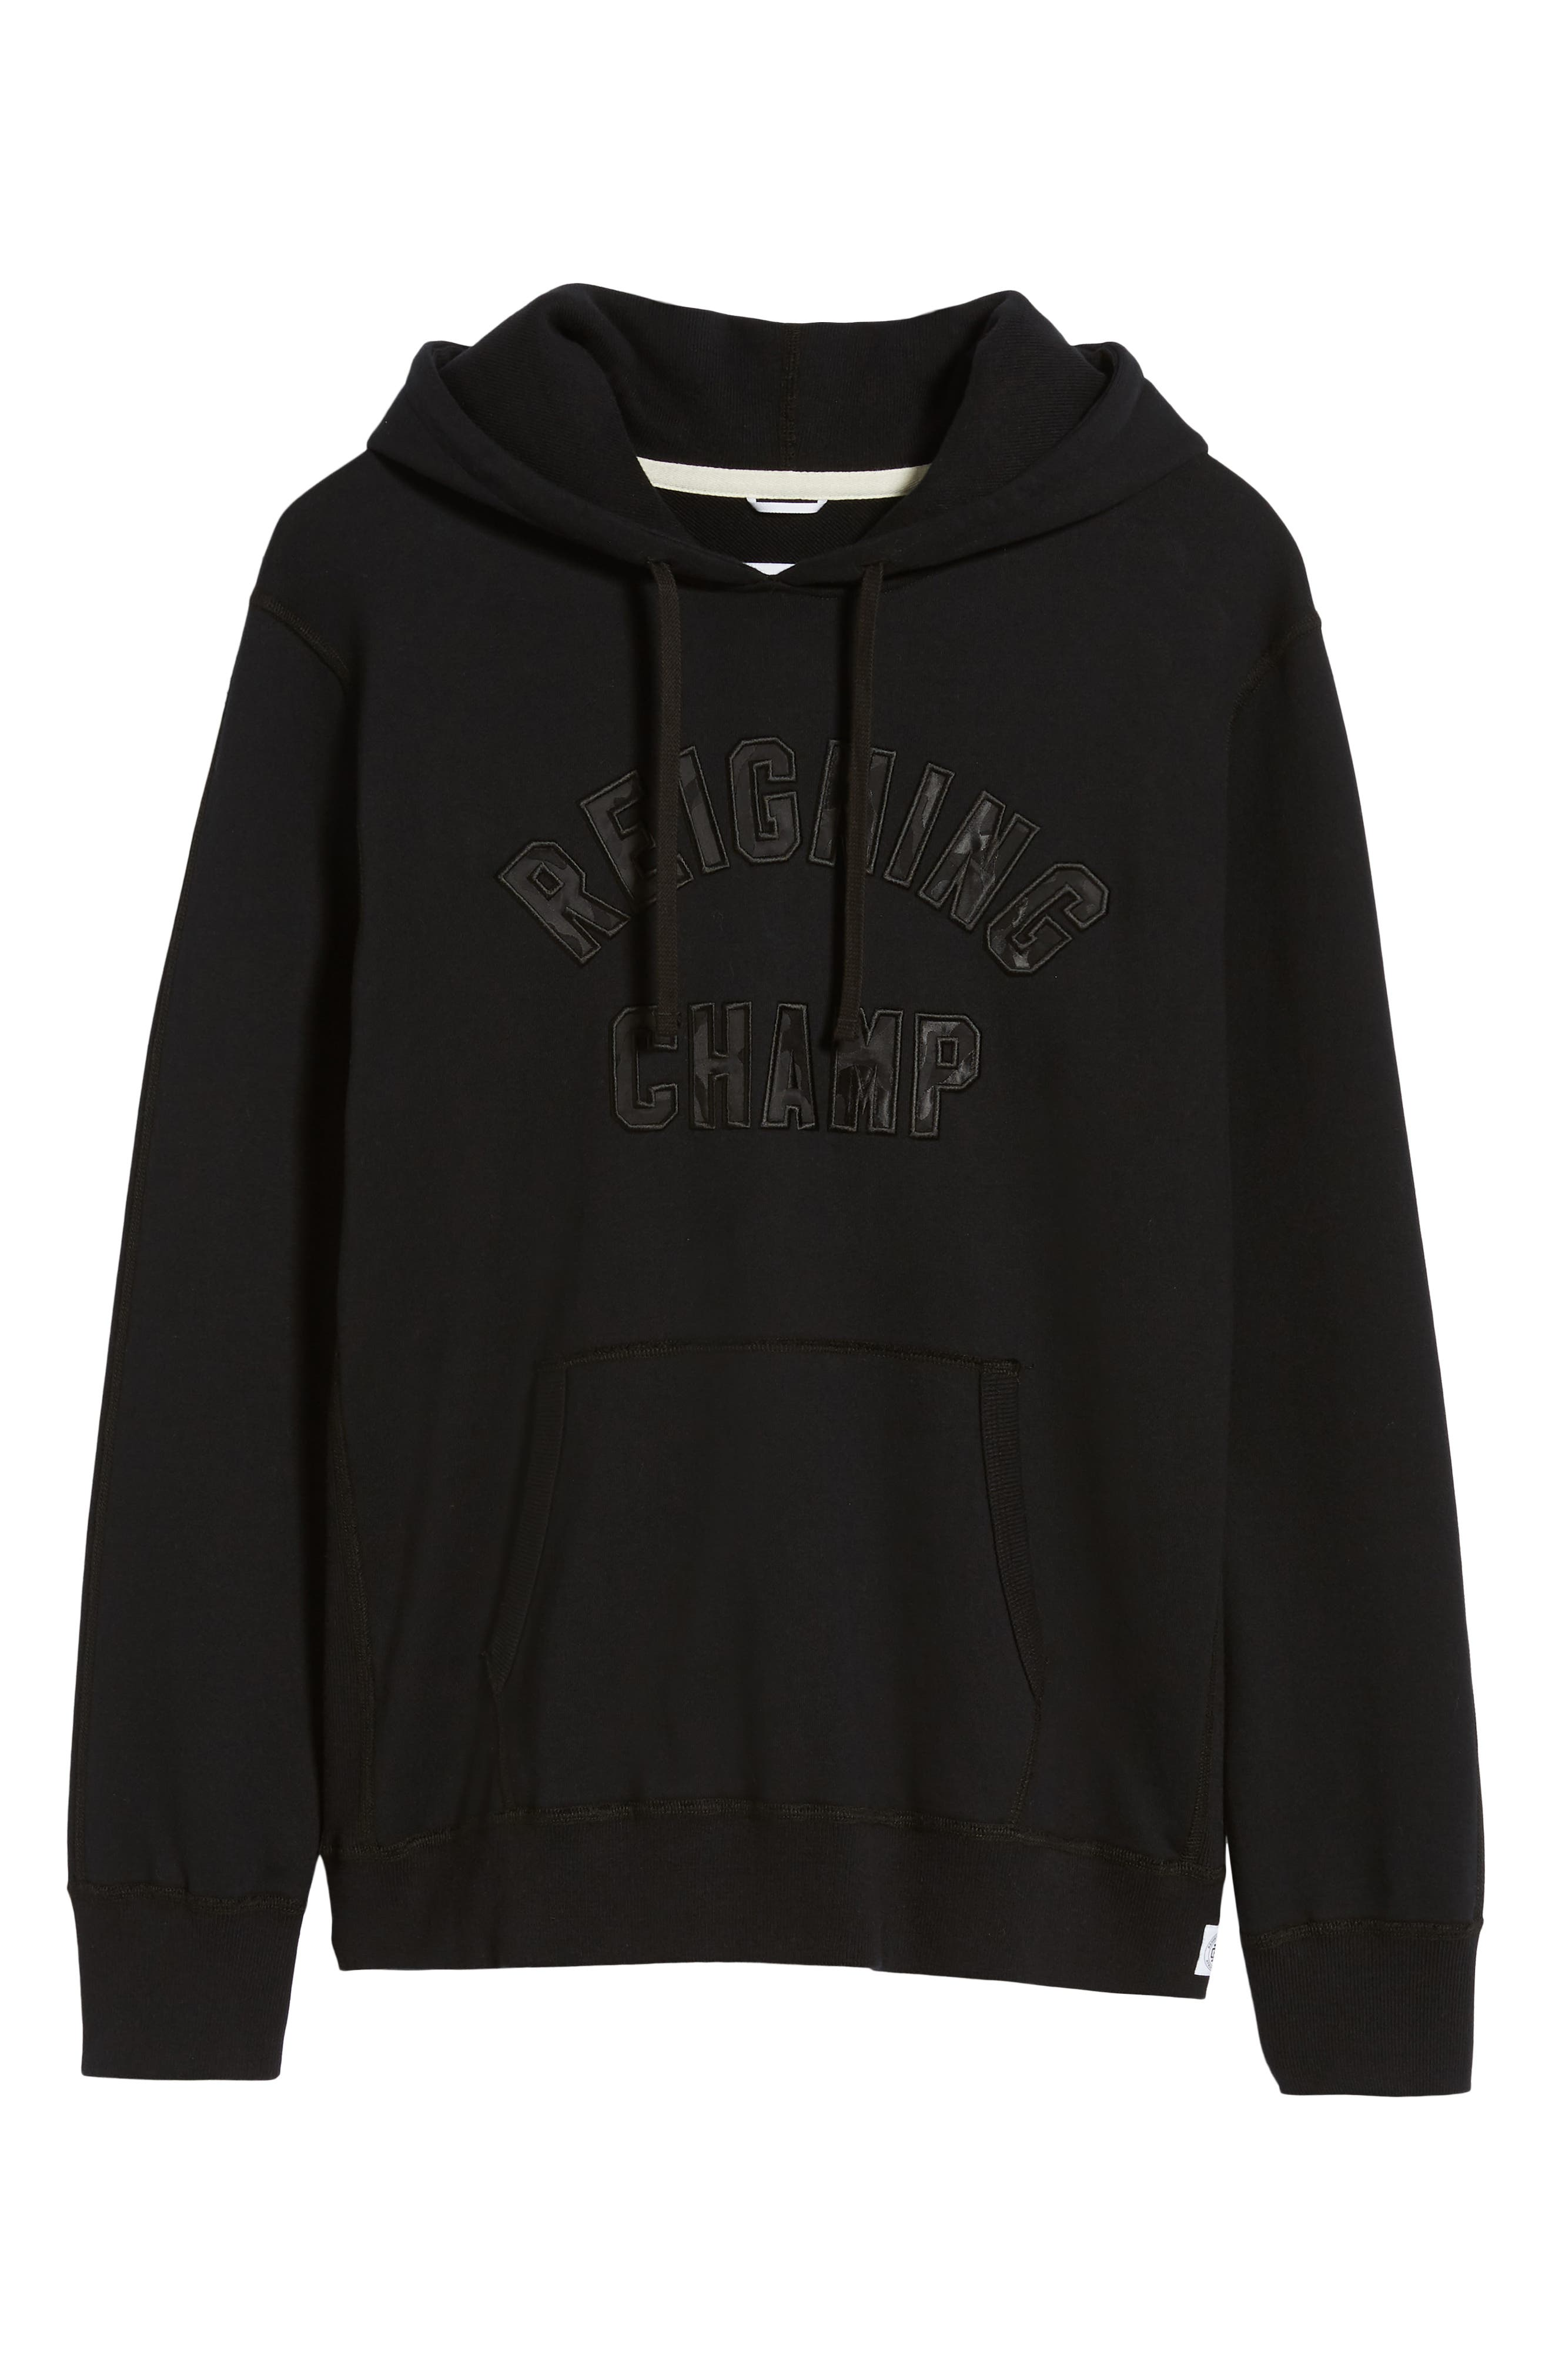 REIGNING CHAMP, Club Logo Hooded Sweatshirt, Alternate thumbnail 6, color, BLACK